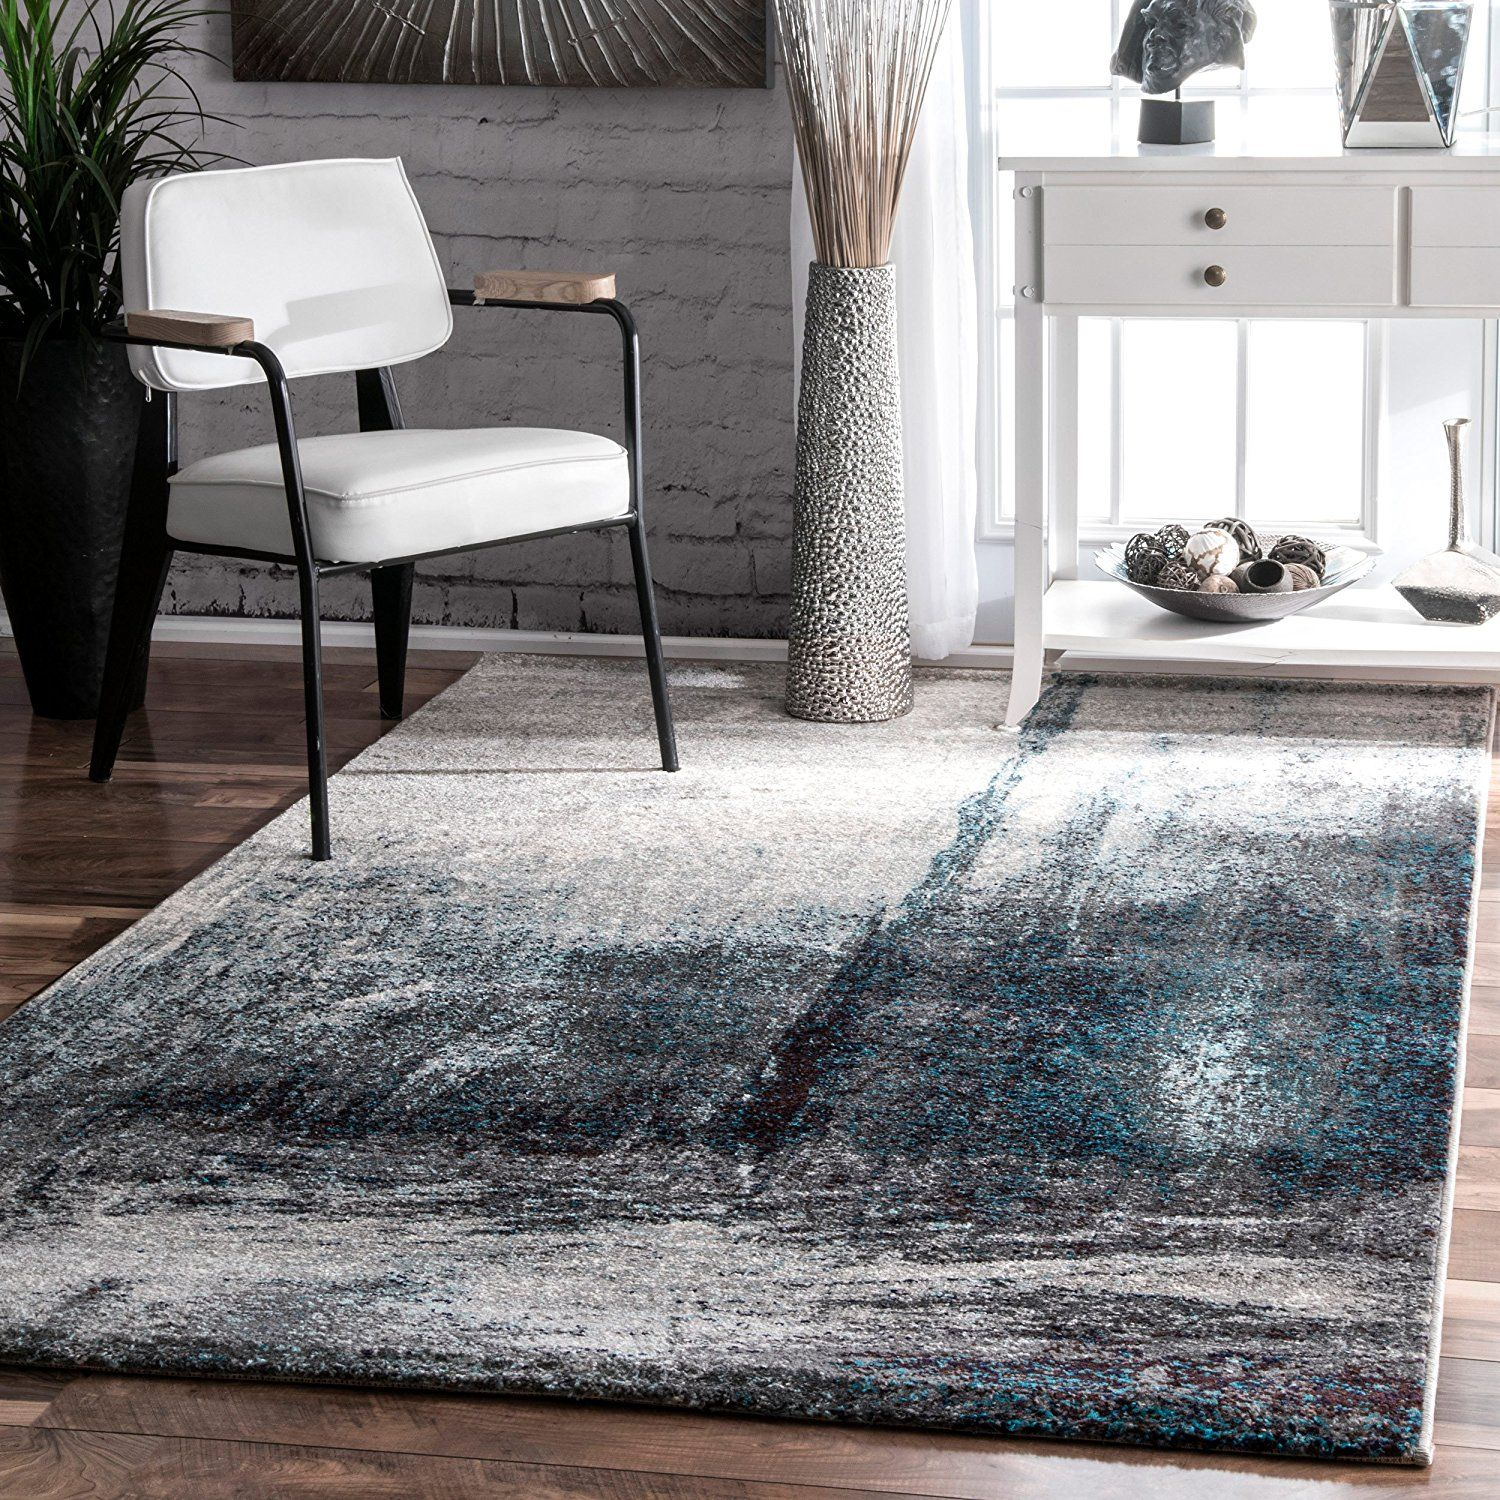 Hallway carpet runners sold by the foot  Contemporary Midnight Fog Abstract Grey Area Rugs  Feet by  Feet